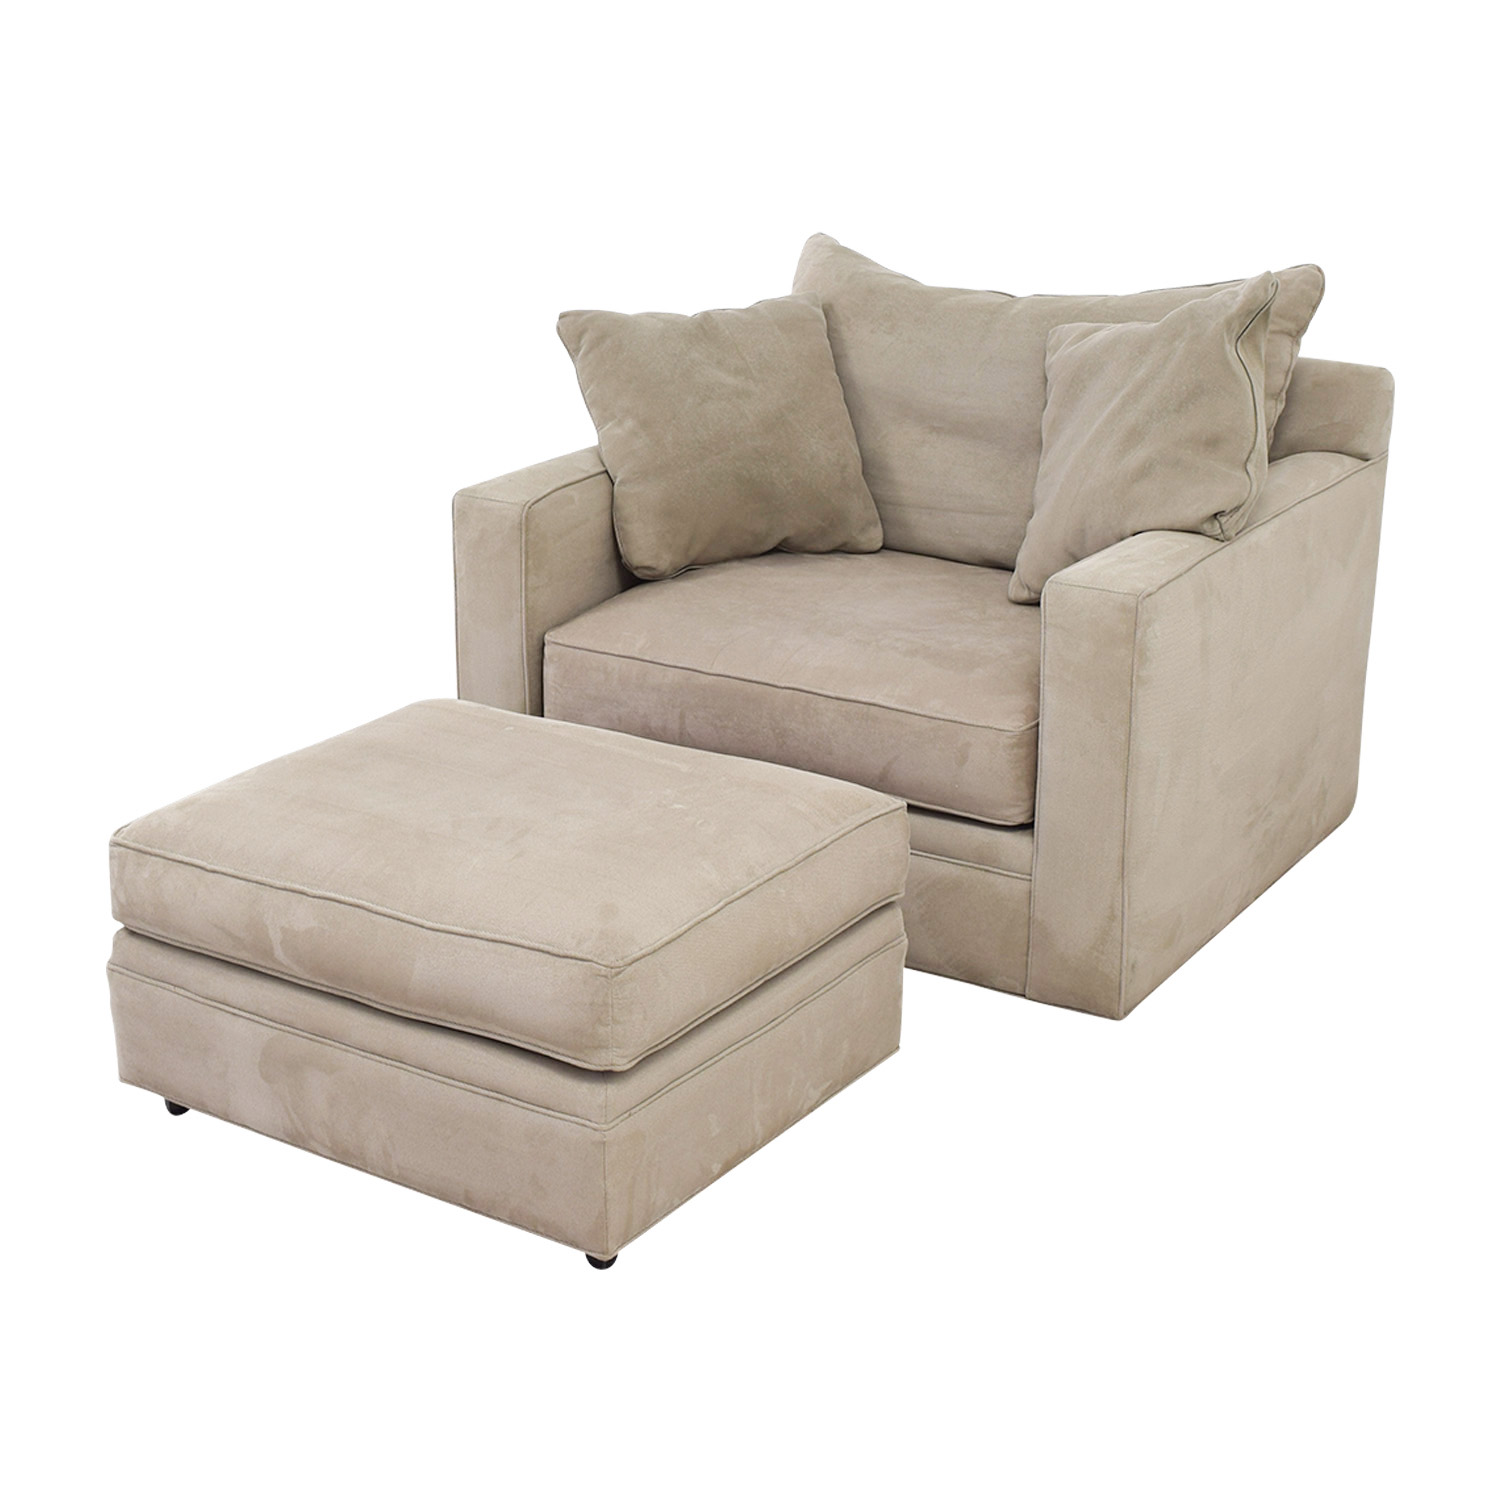 room and board metro sleeper sofa sectional with reversible chaise ottoman 90 off grey accent